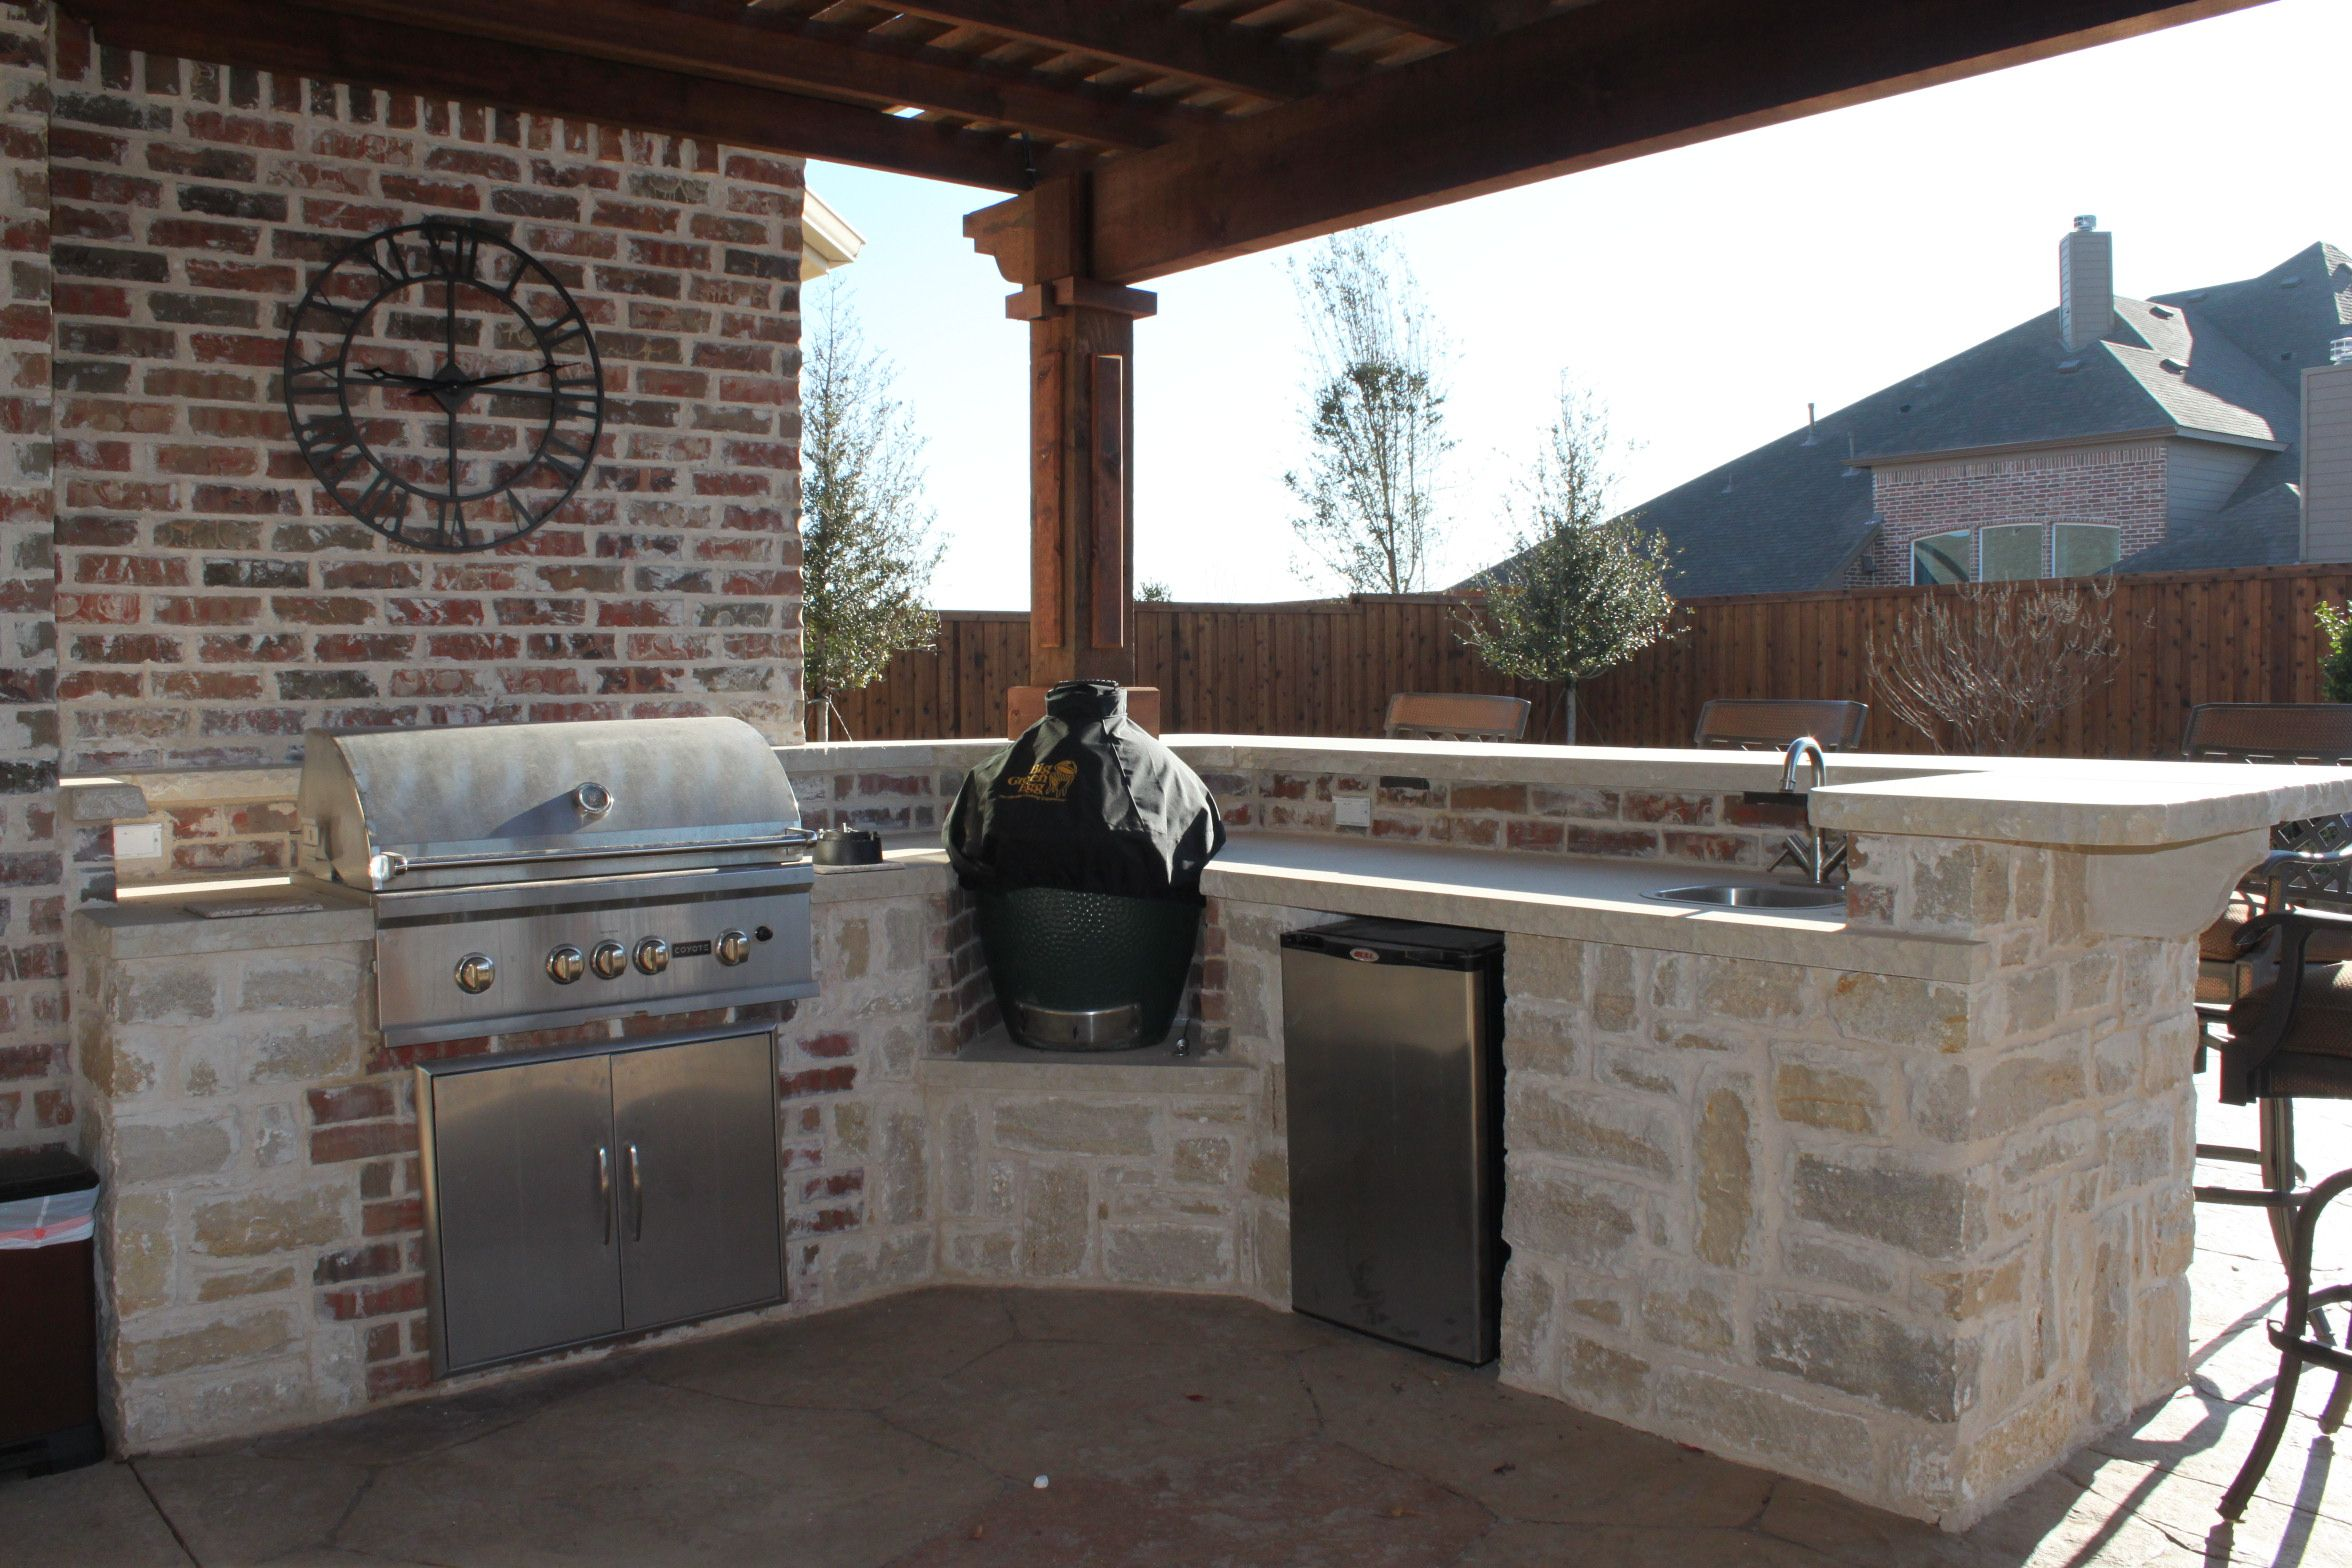 Outdoor Kitchen With Bbq Smoker Refrigerator And Sink Buitenkeukens Bbq Bbq Grill